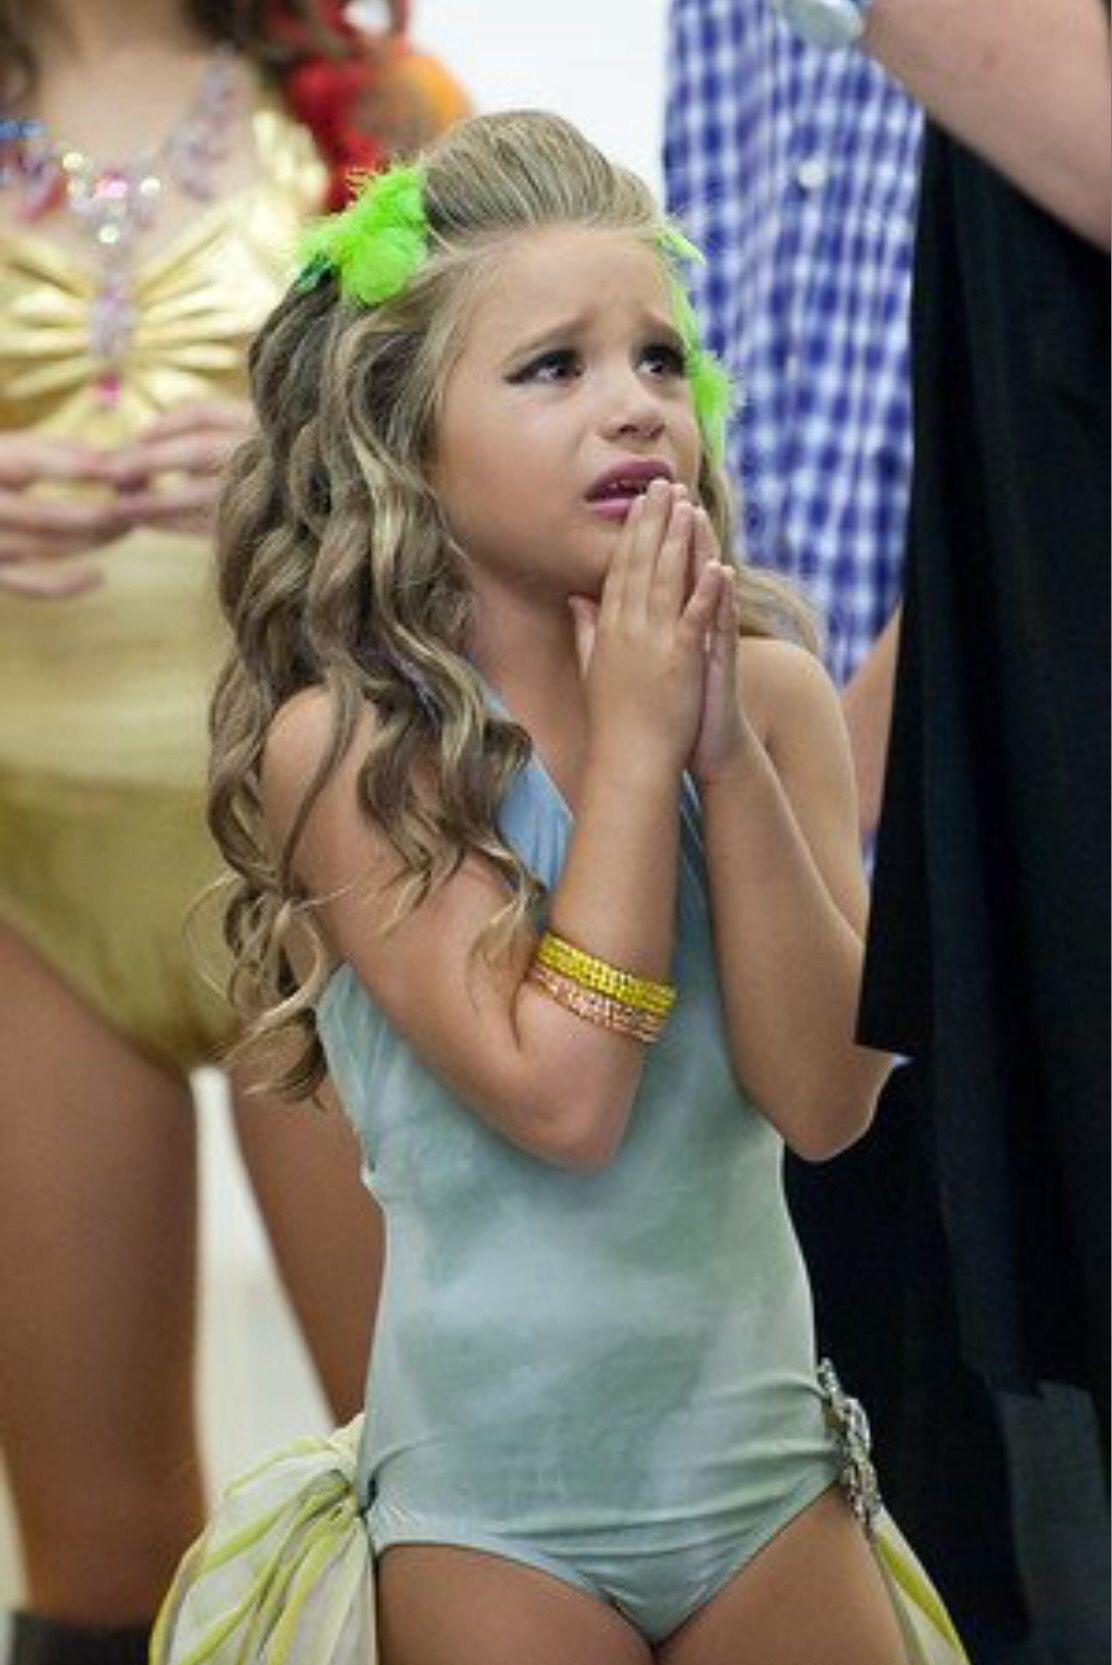 Mackenzie Ziegler Behind The Scenes of LUX's Music Video ...